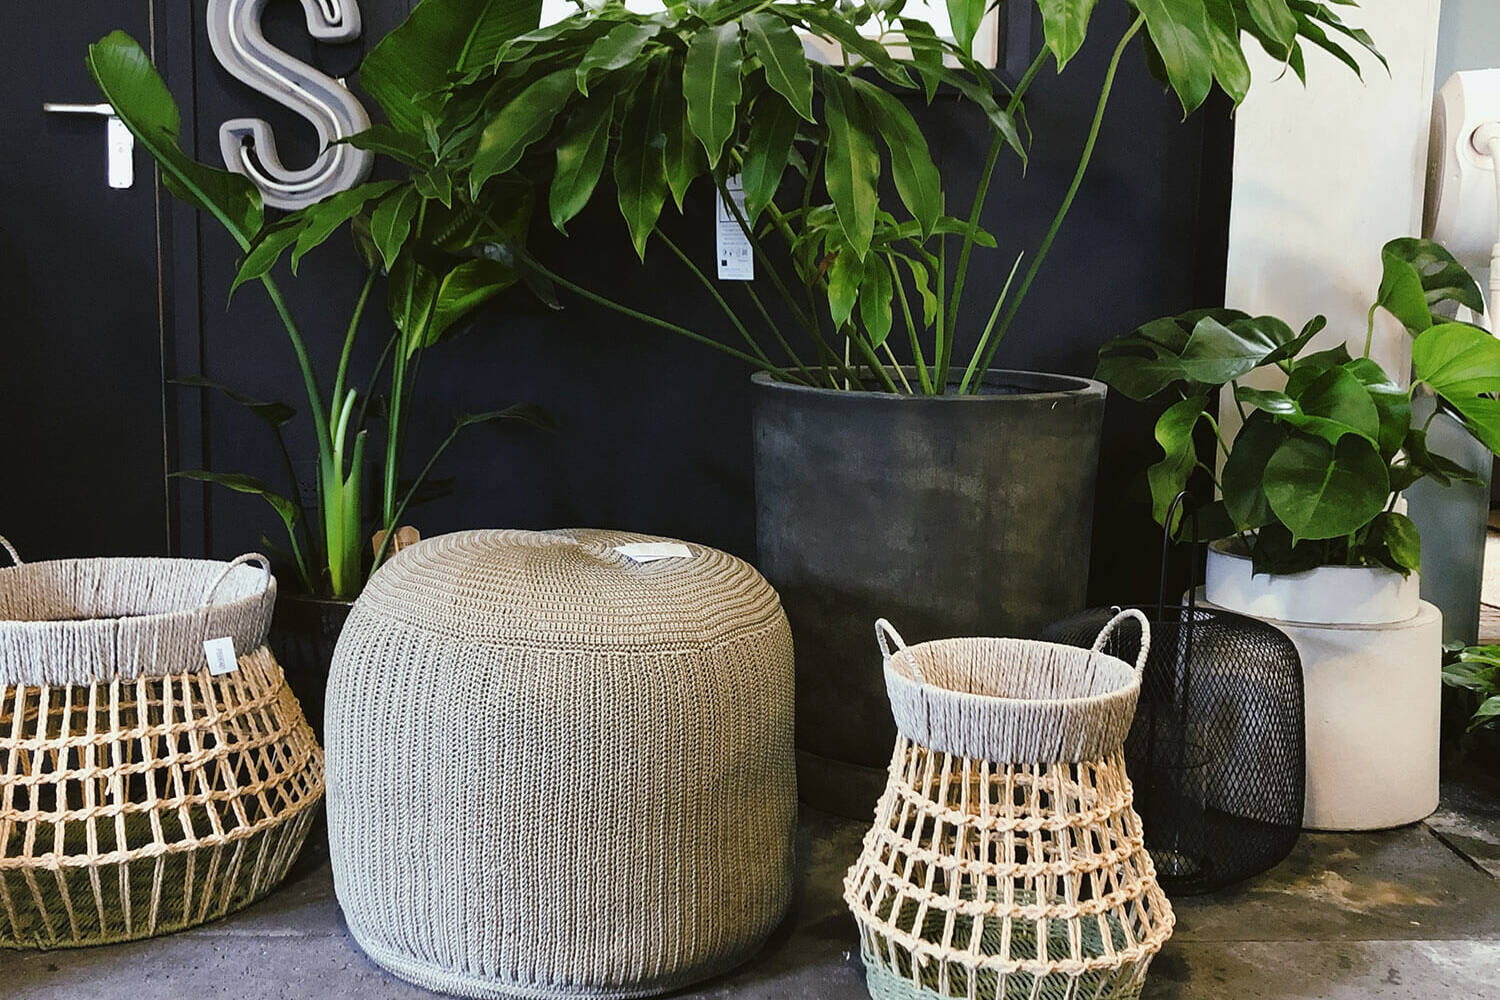 The-Garden-Store-Tuinstyling-Interieurstyling-Plantstyling-boutique